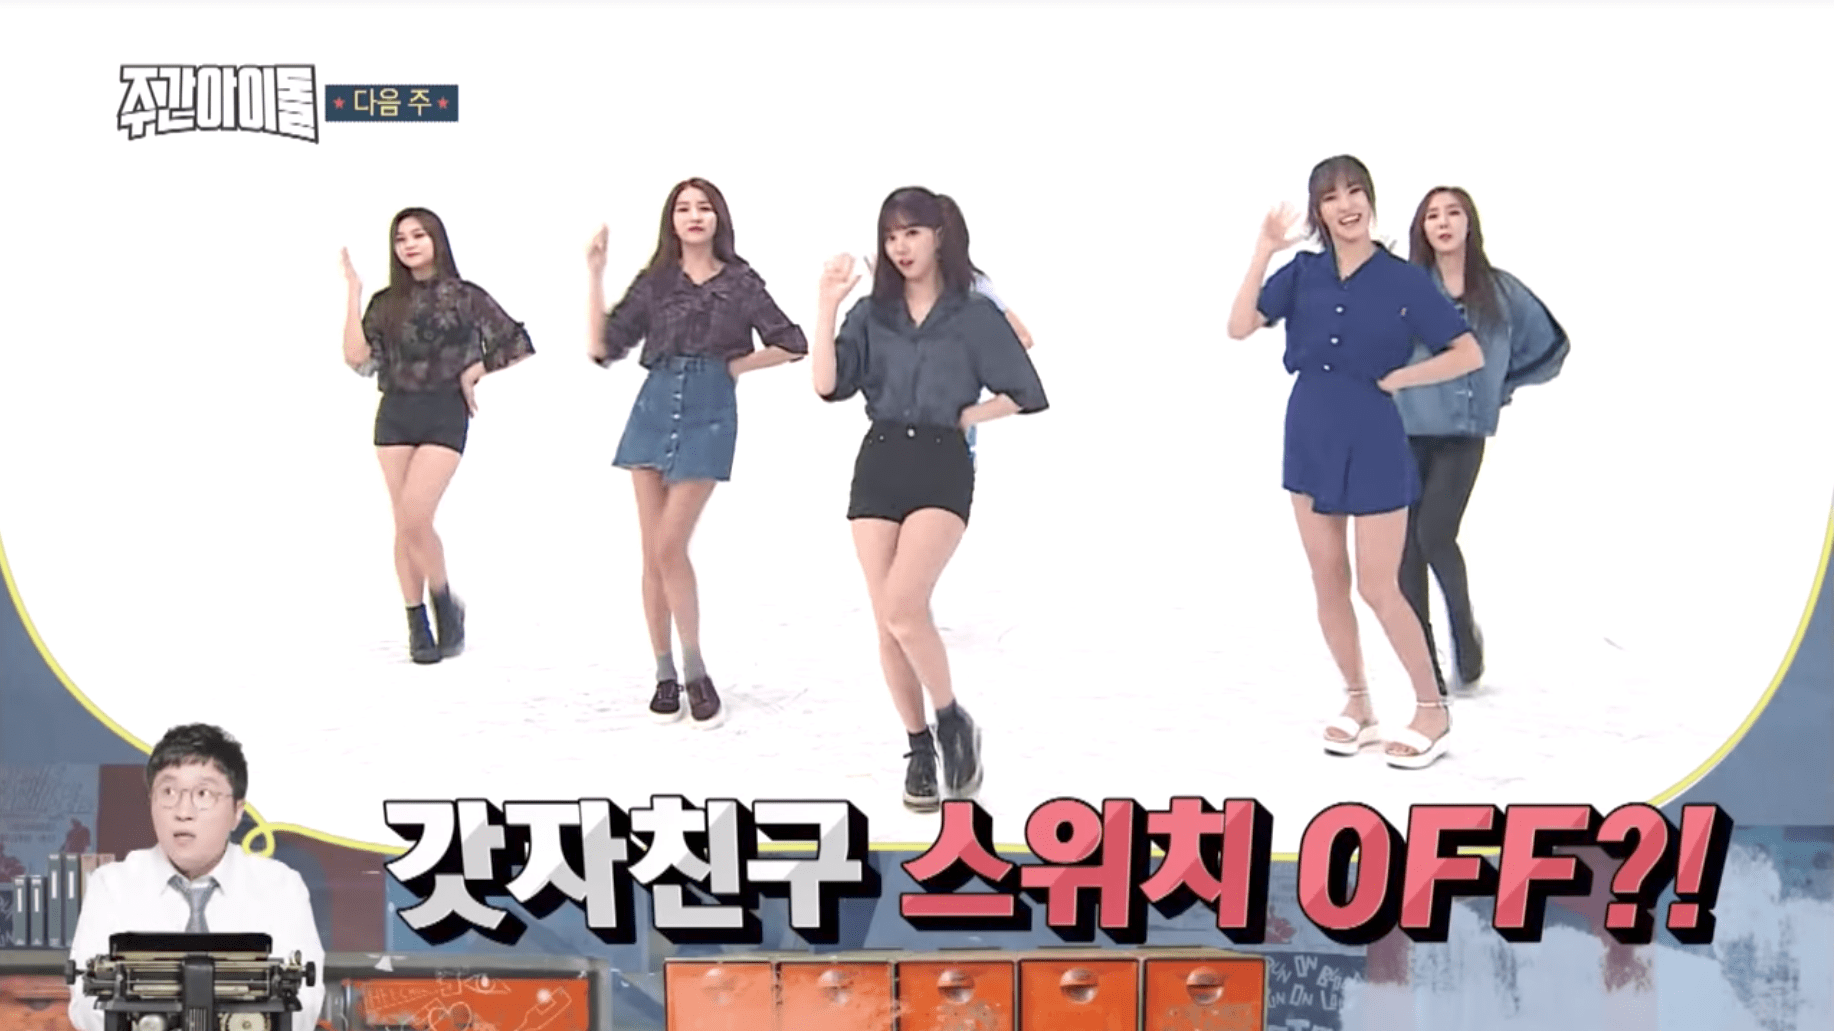 Watch: GFRIEND Takes On Random Play Dance At Twice The Speed In Weekly Idol Preview